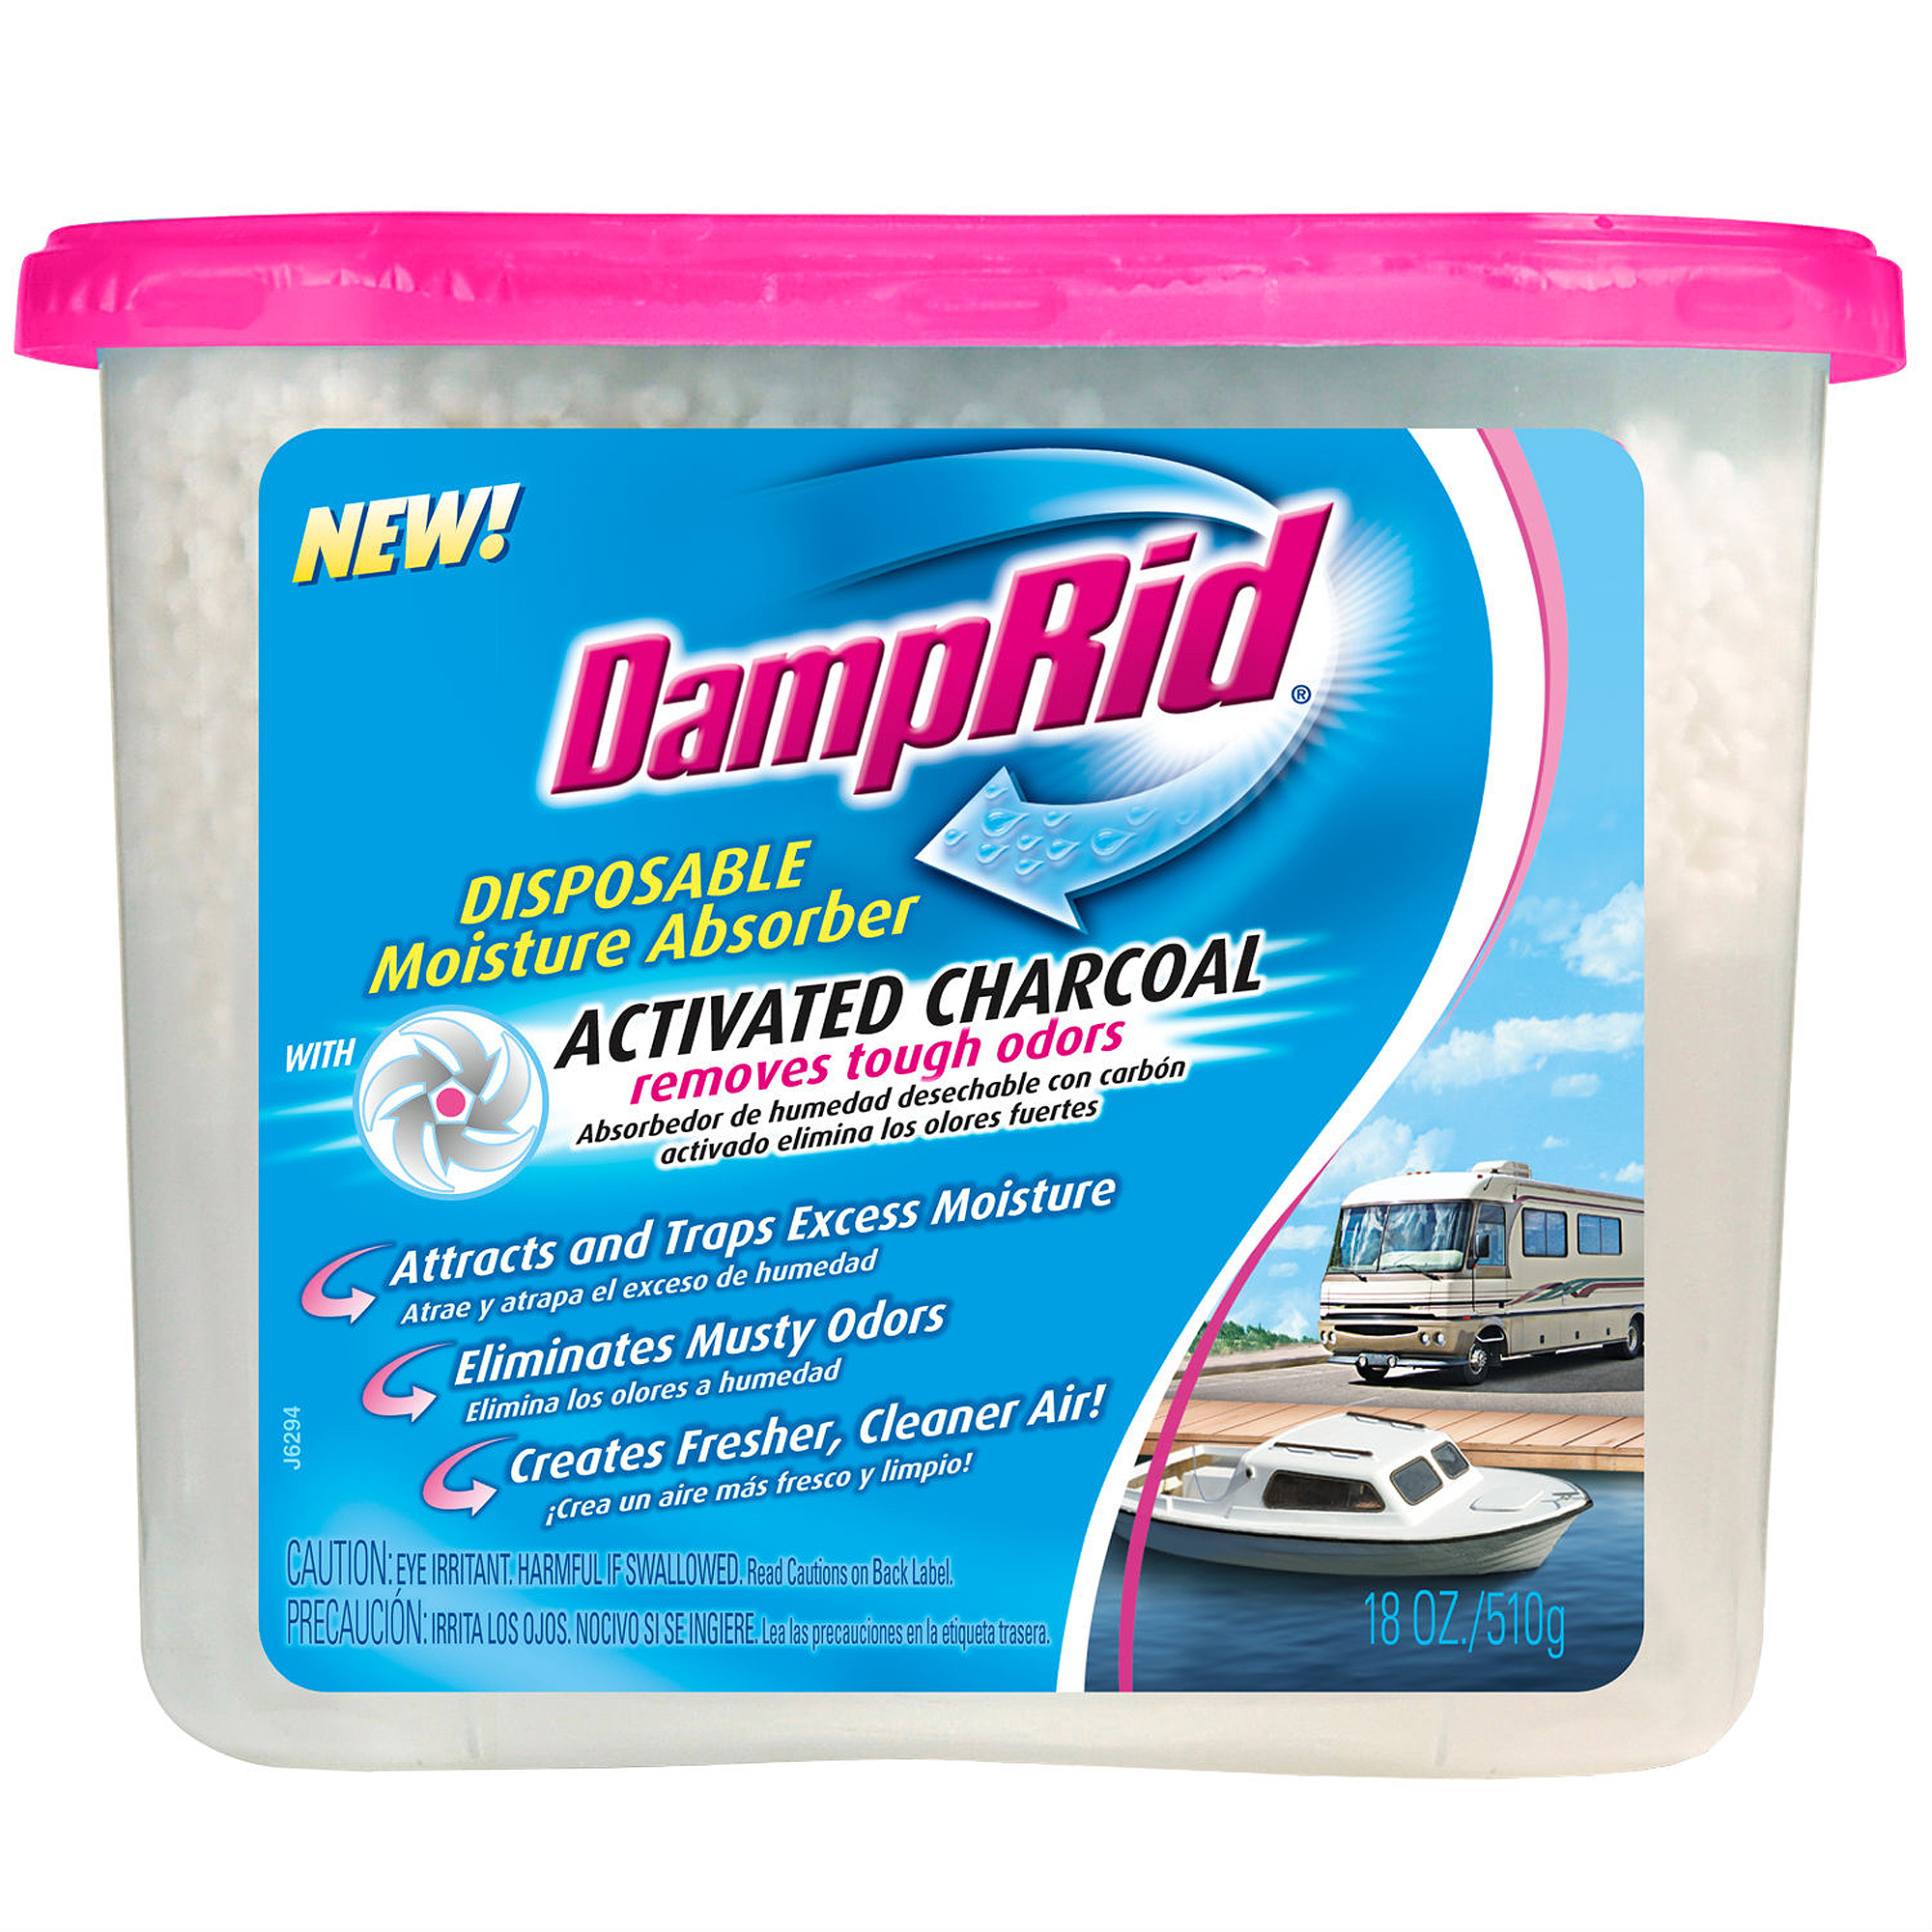 DampRid Moisture Absorber with Charcoal